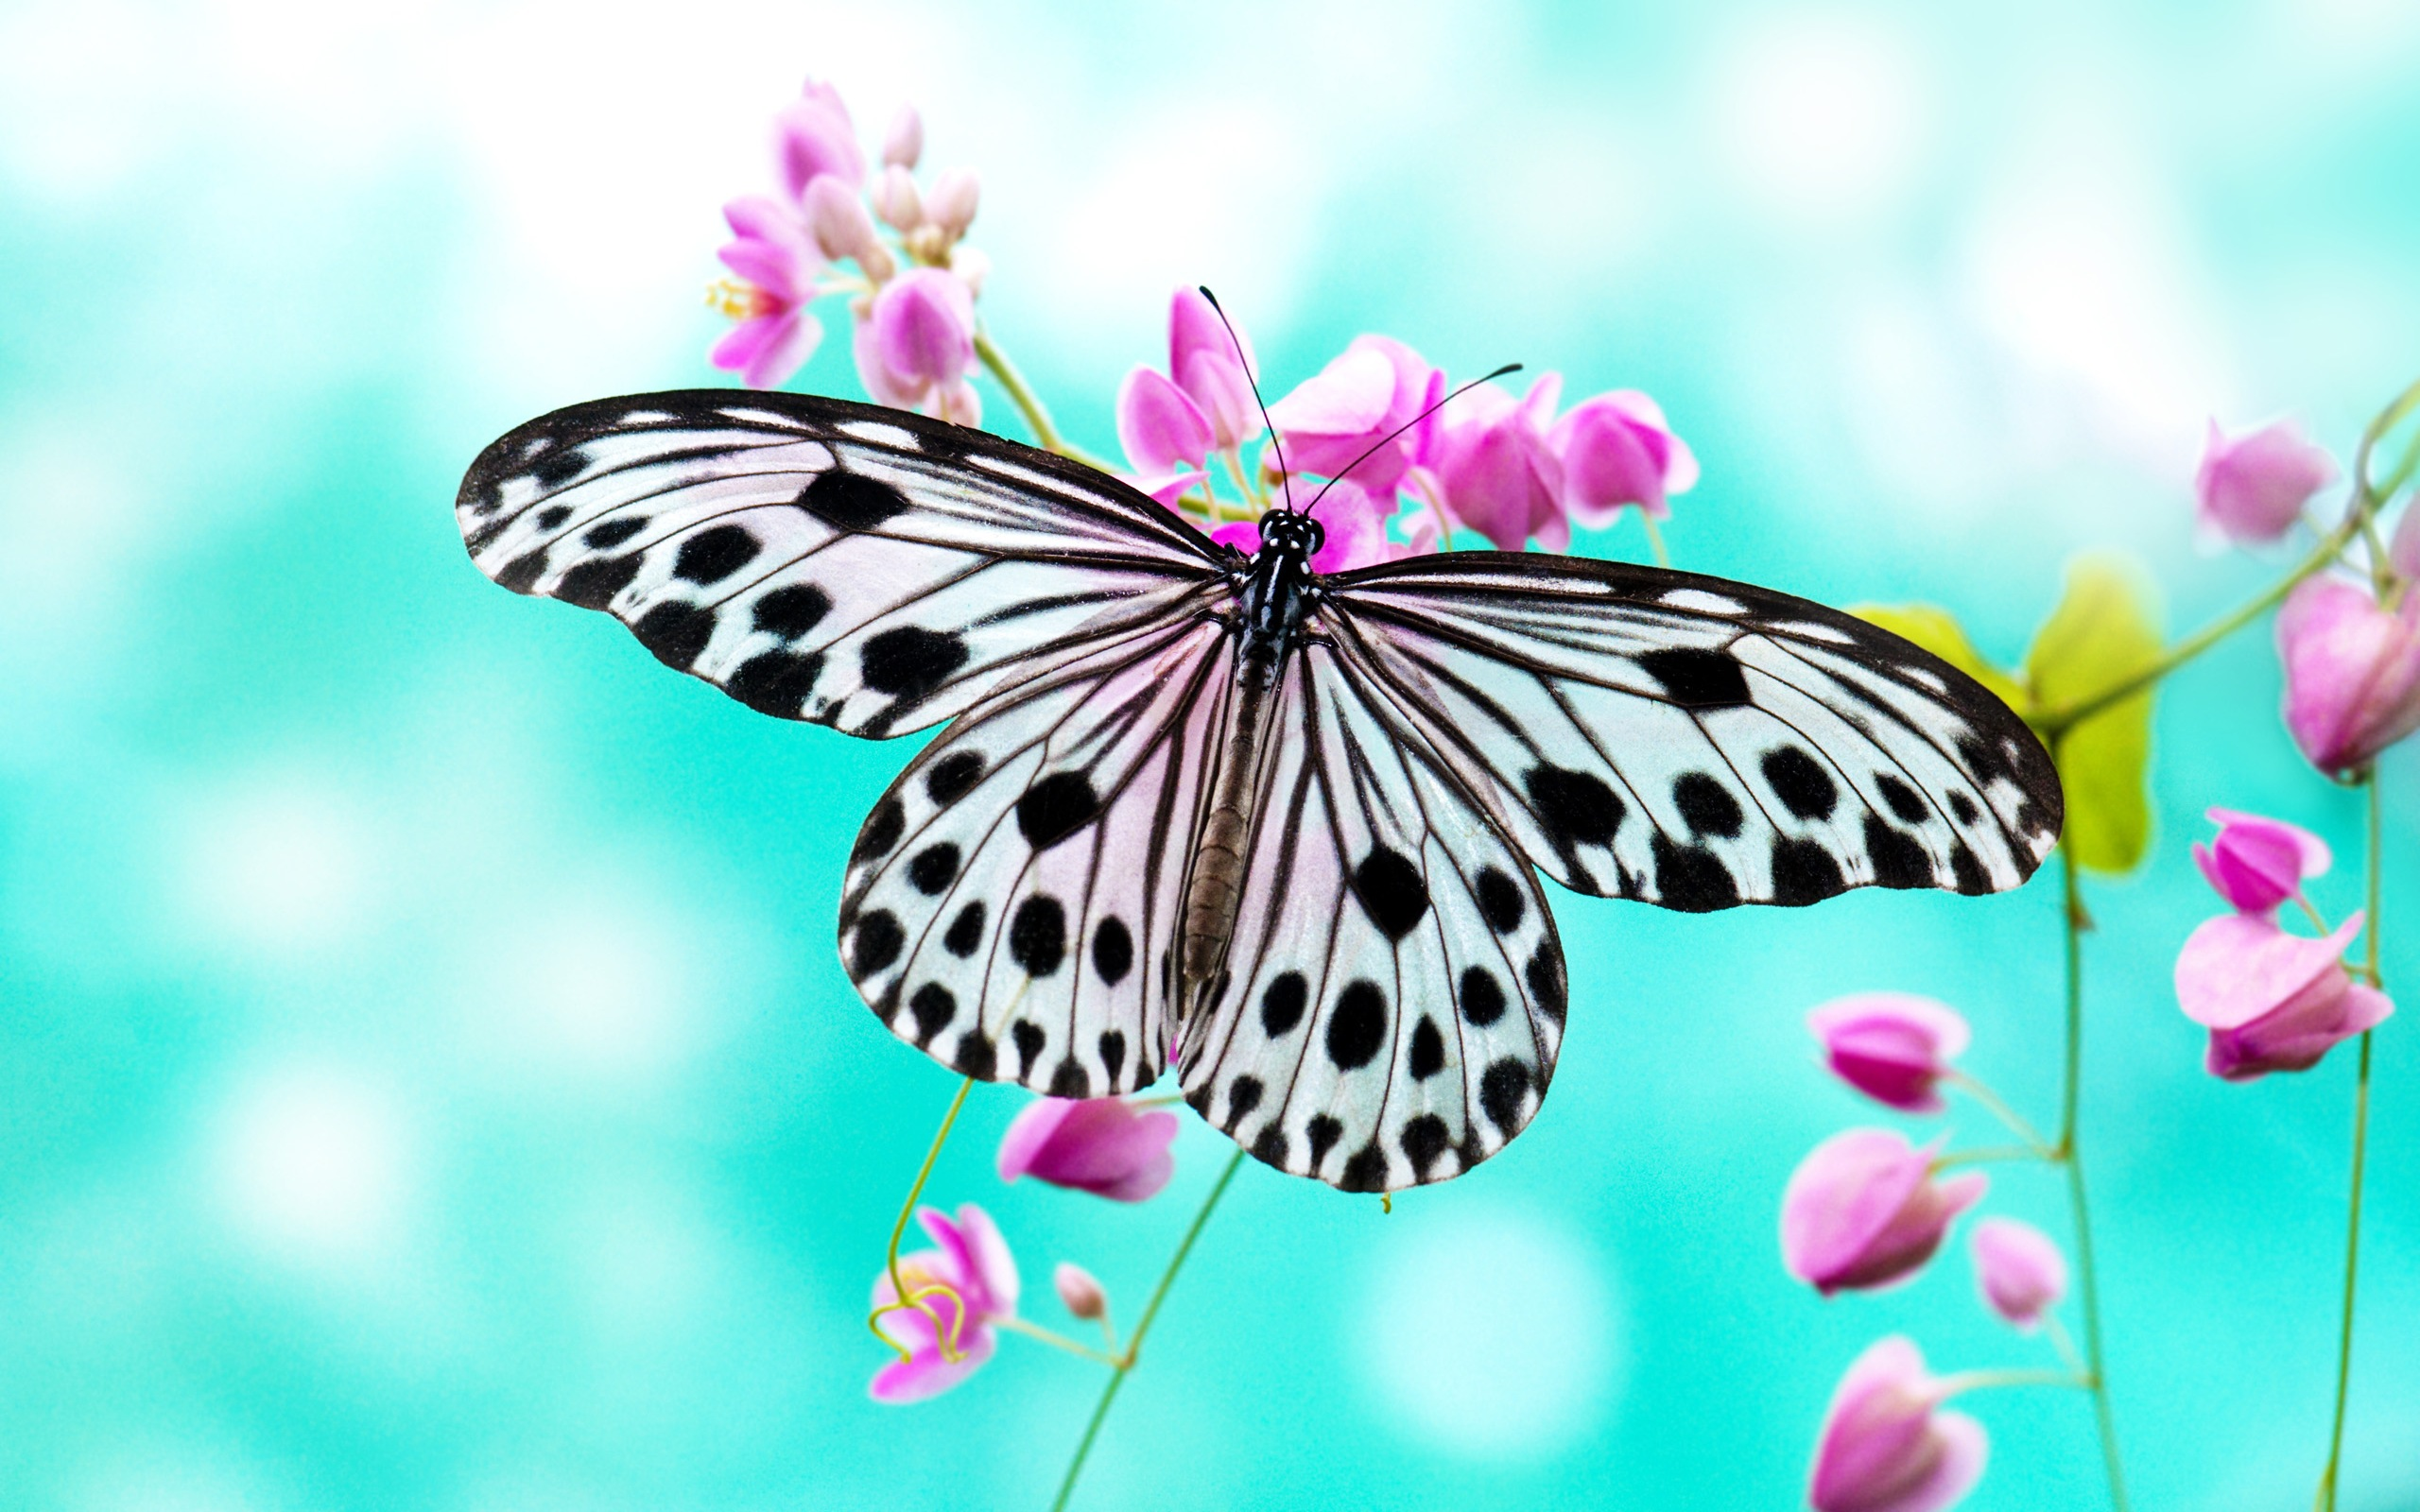 Butterfly HD Wallpaper Background Image 2560x1600 ID324873 2560x1600